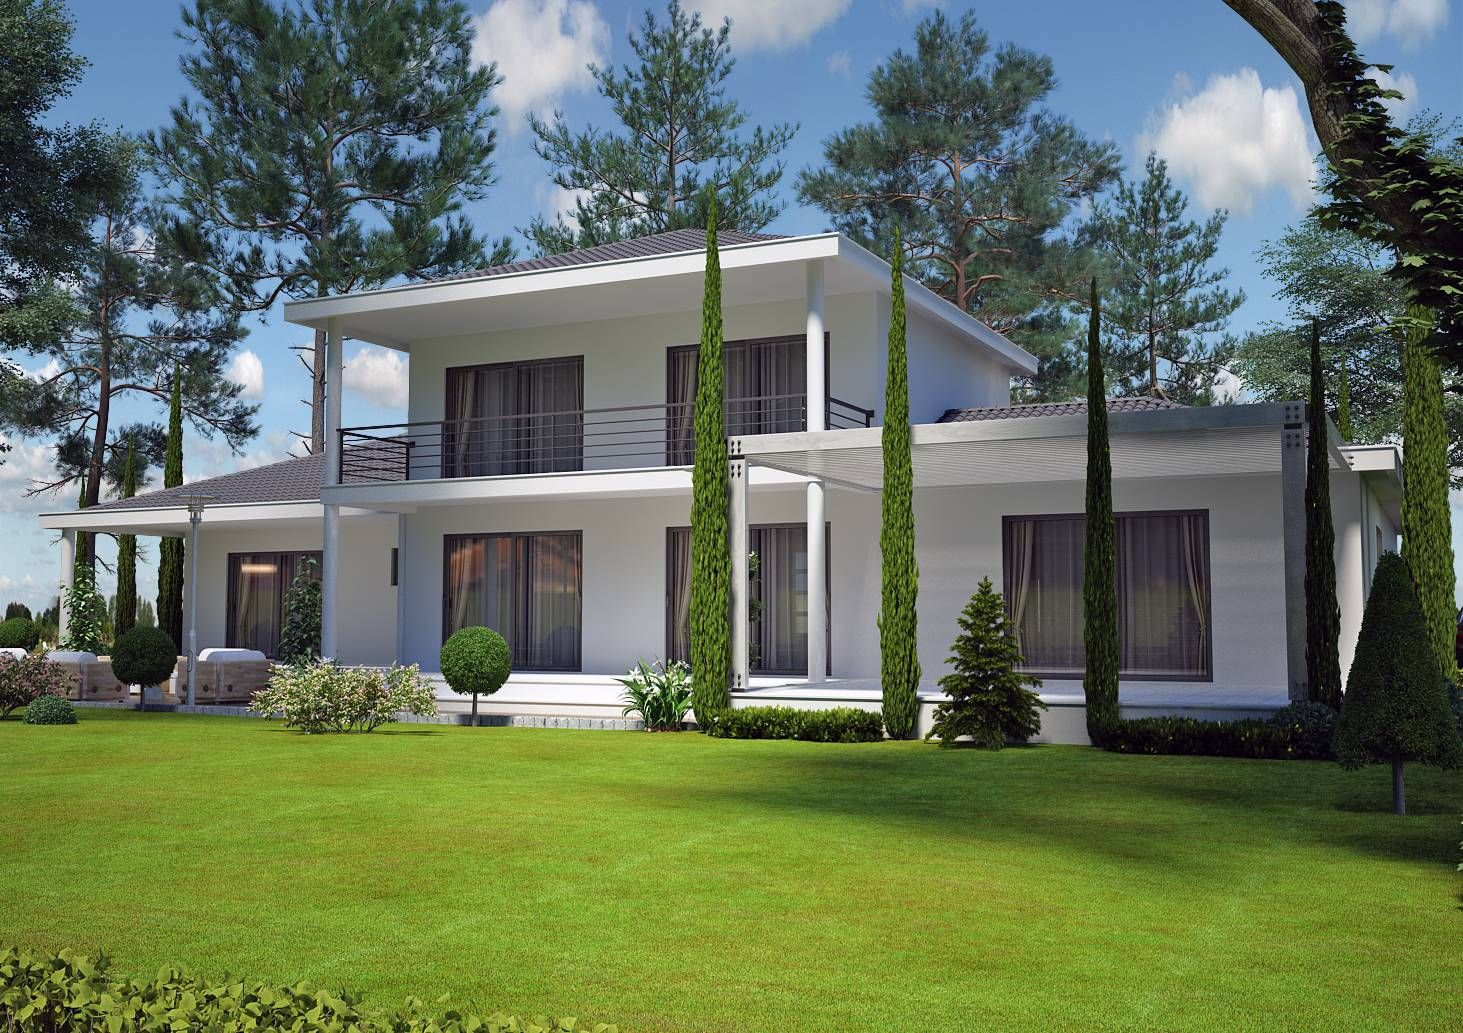 Villa contemporaine 150 m2 etage mod le pinede salon - Plan de maisons contemporaines ...